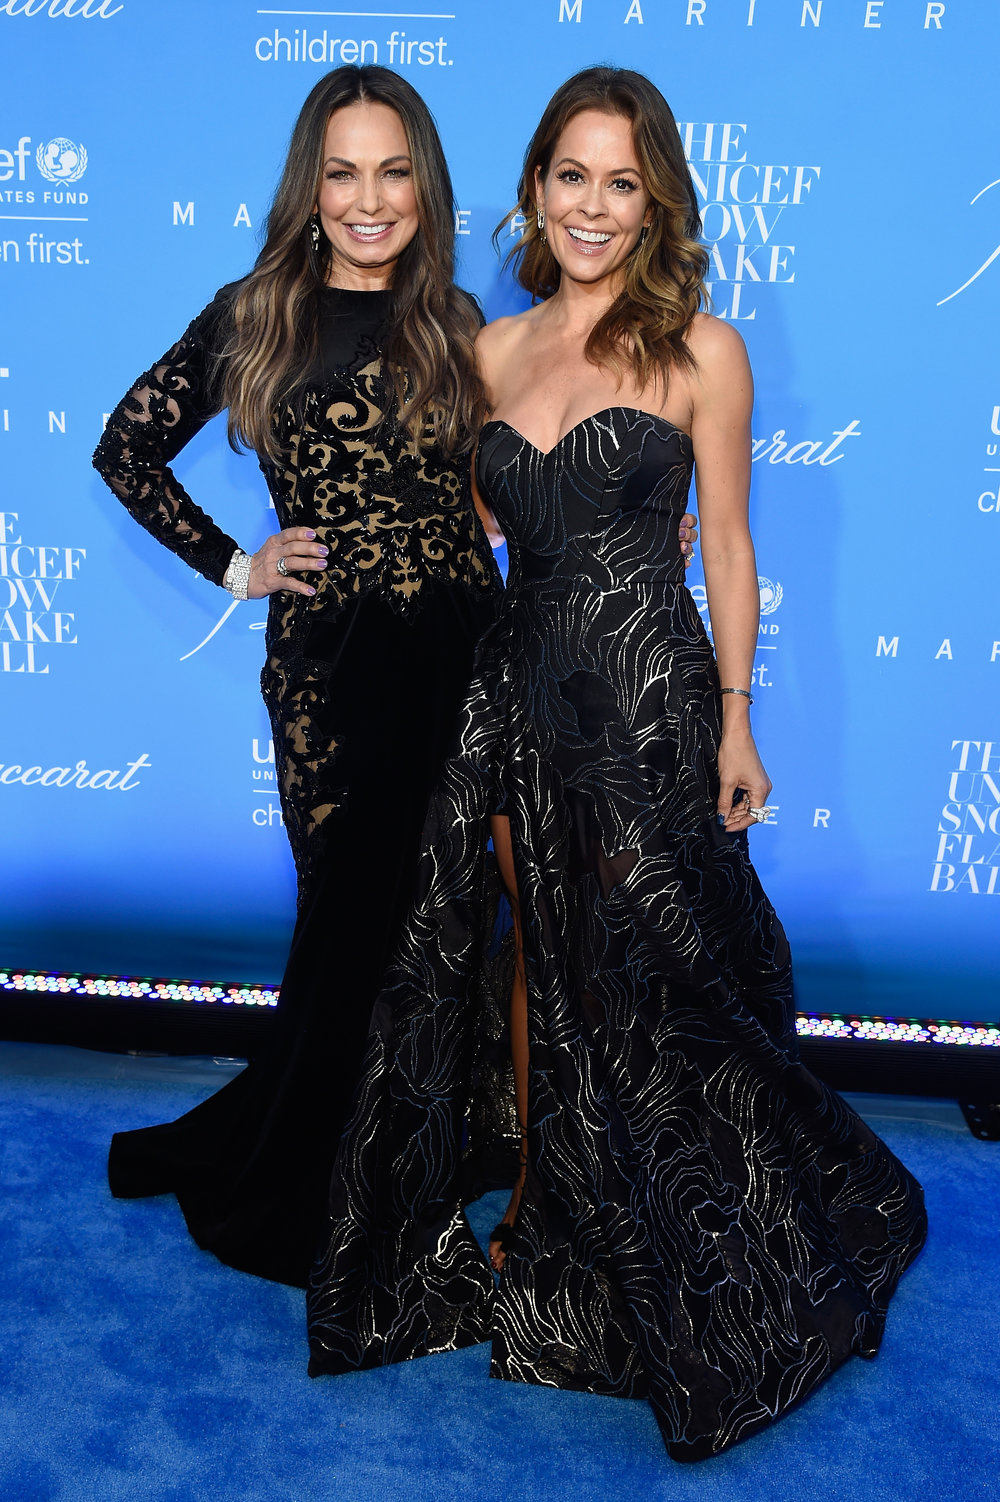 Moll Anderson and Brooke Burke-Charvet ©2016 Kevin Mazur/Getty Images for UNICEF